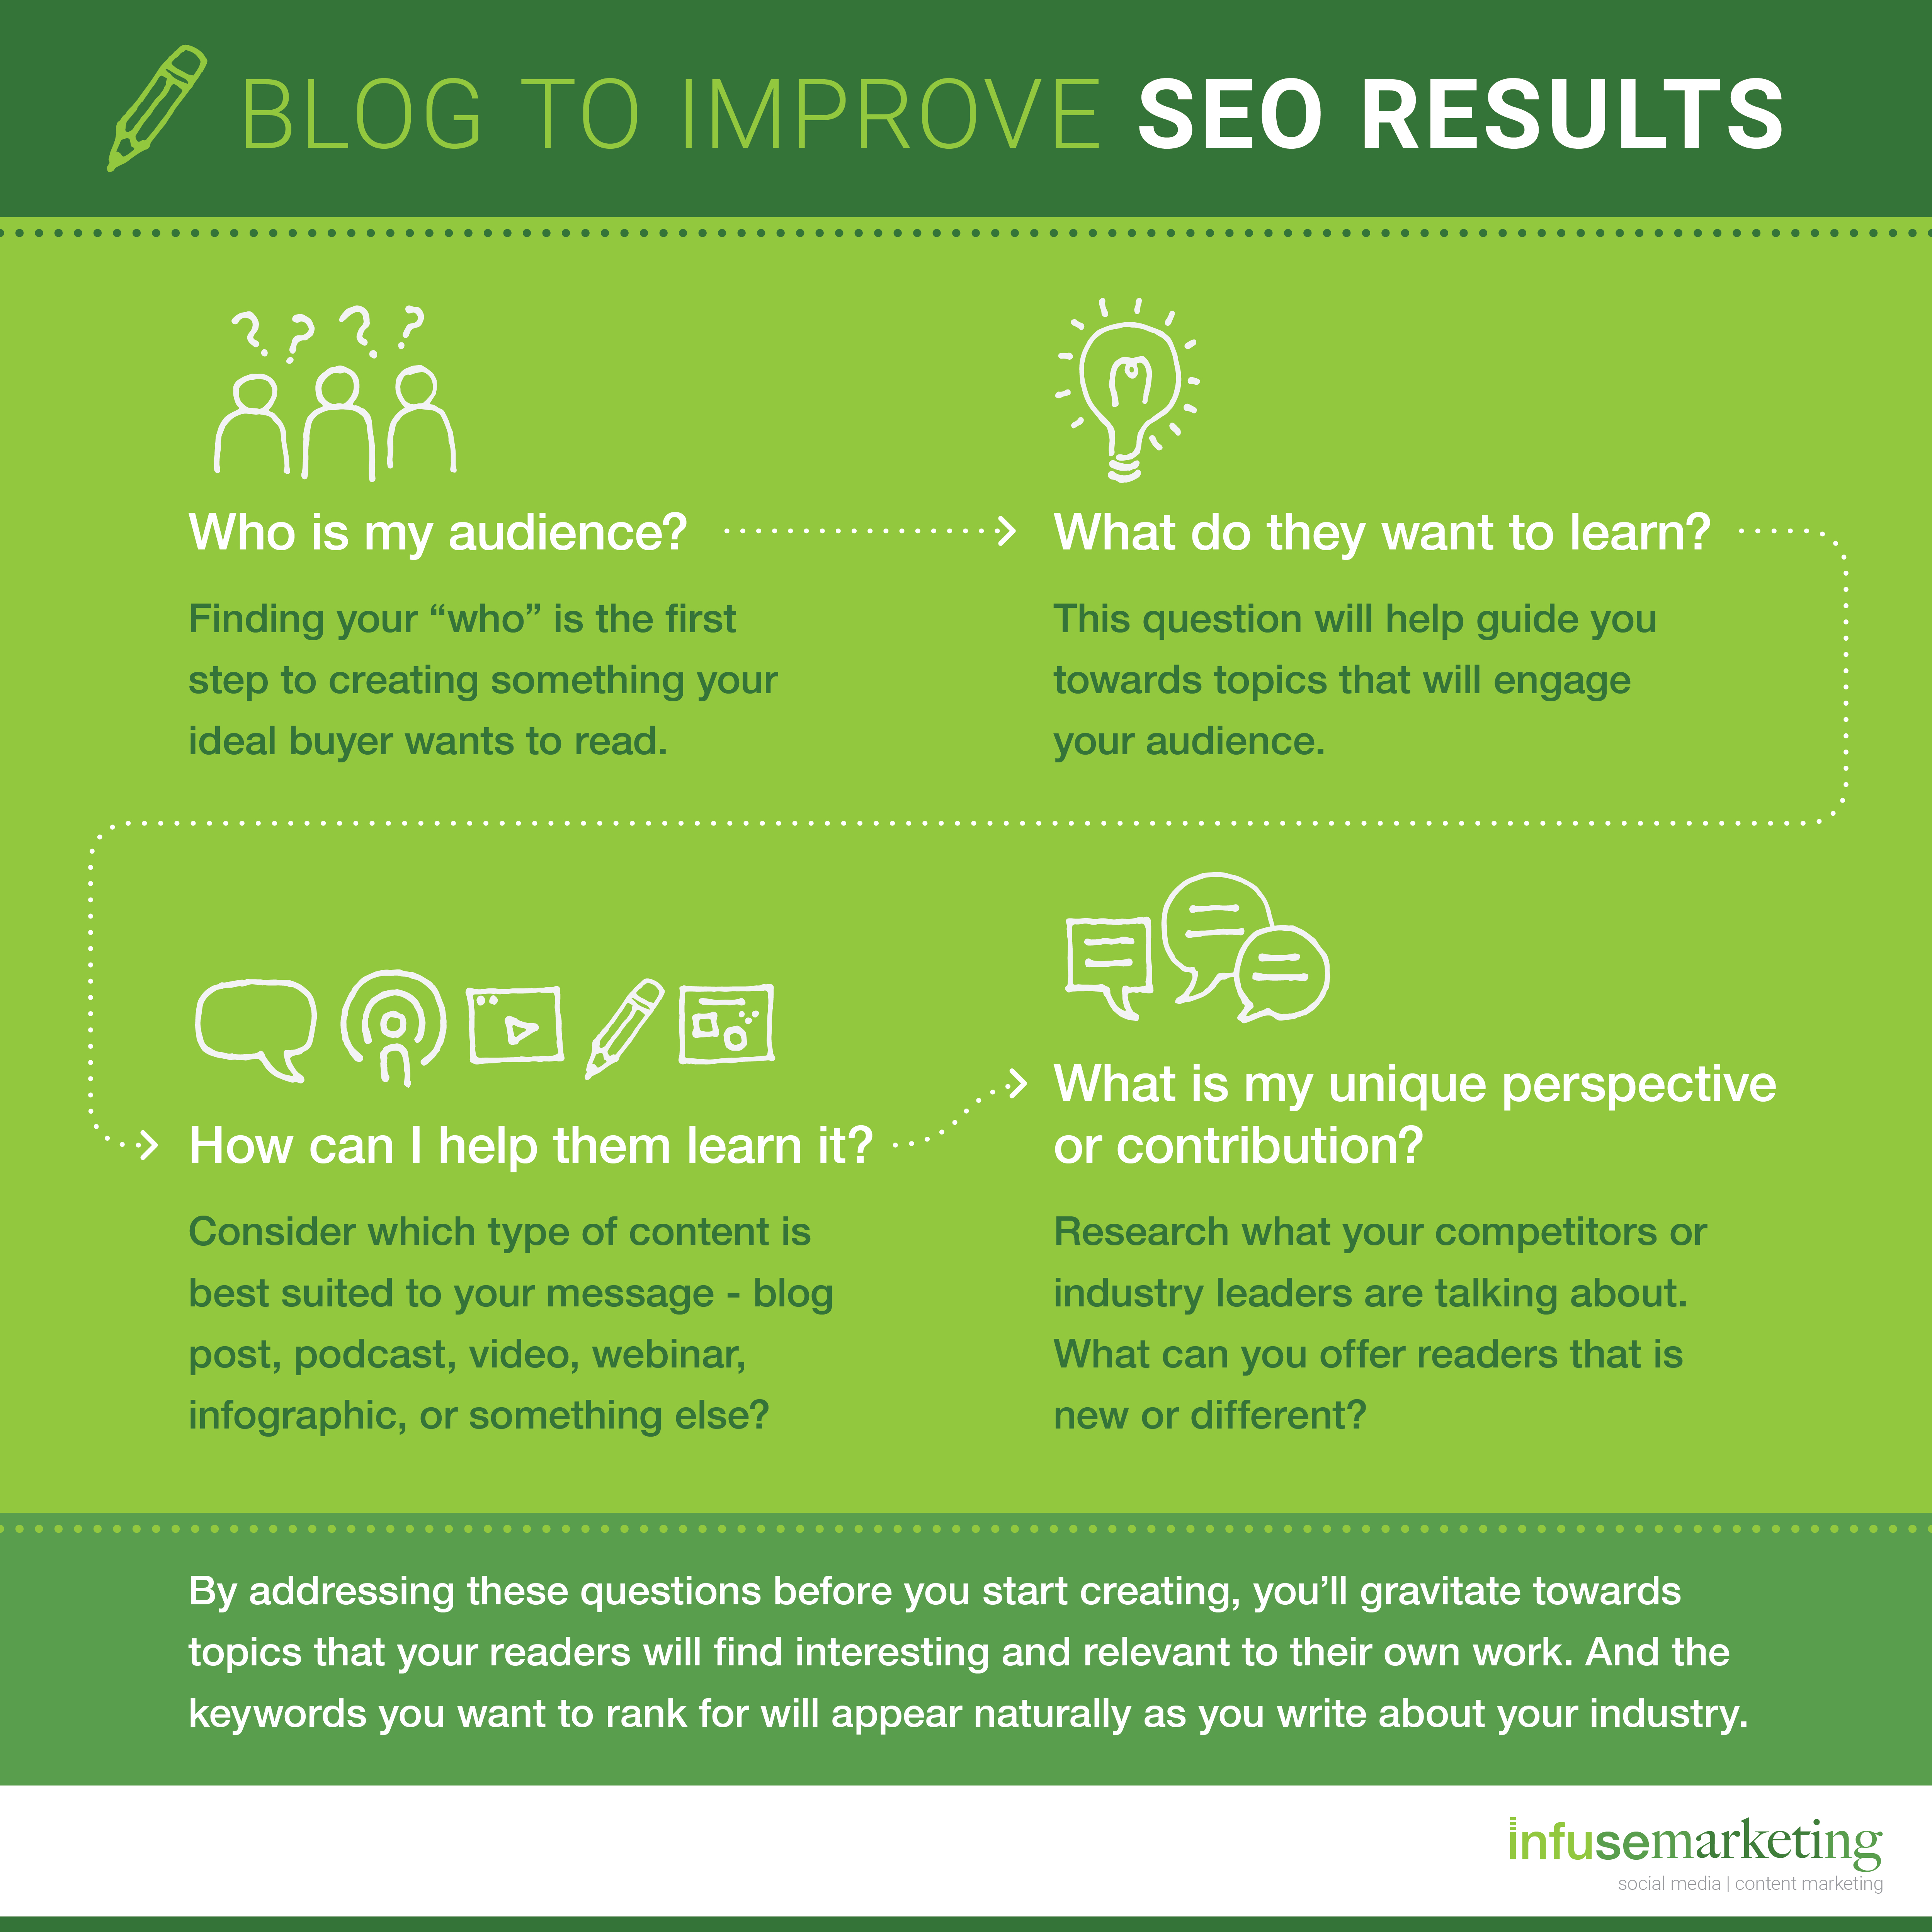 blogging is an excellent content marketing vehicle to help with inbound marketing and SEO